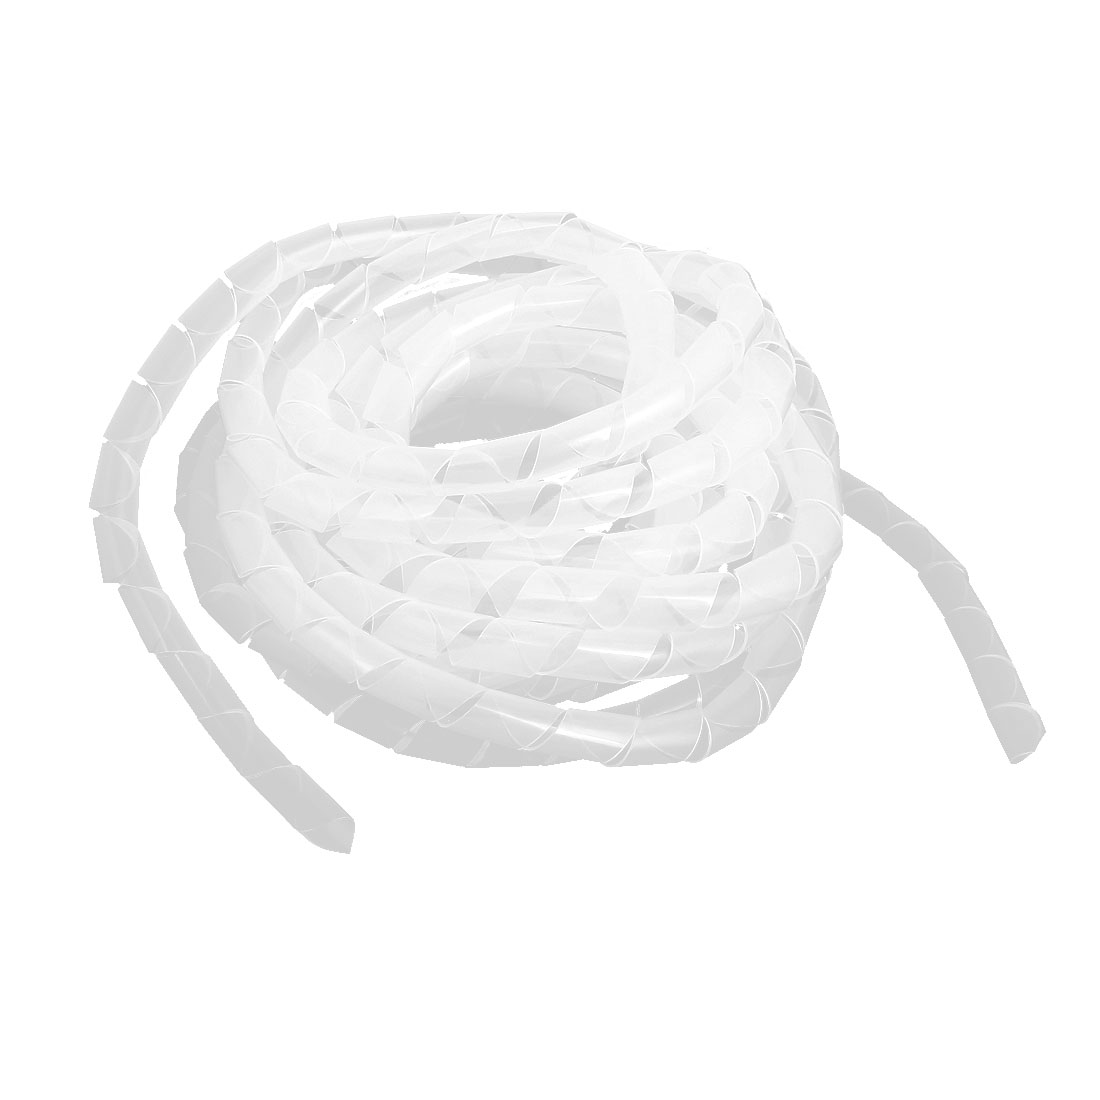 12mm Outside Dia 6.5m 21Ft Clear Spiral Cable Wire Wrap Tube Cord Pipe